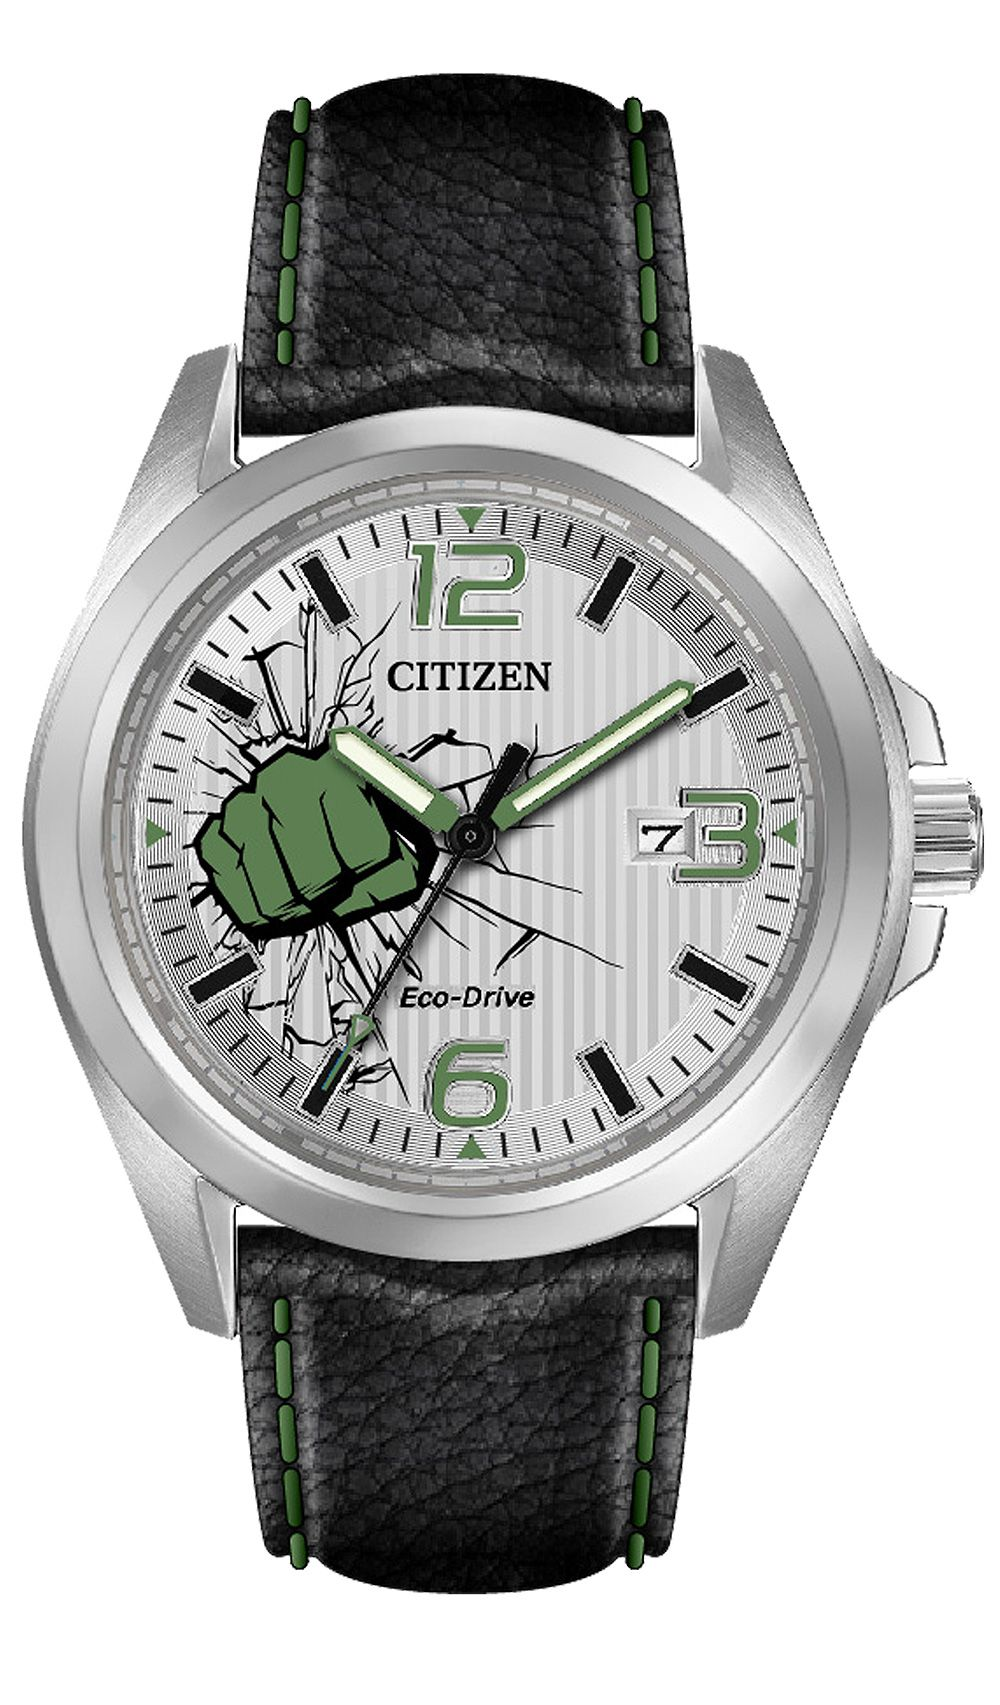 dd577077210 First Look  Citizen s New Marvel Watches Launching at New York Comic ...